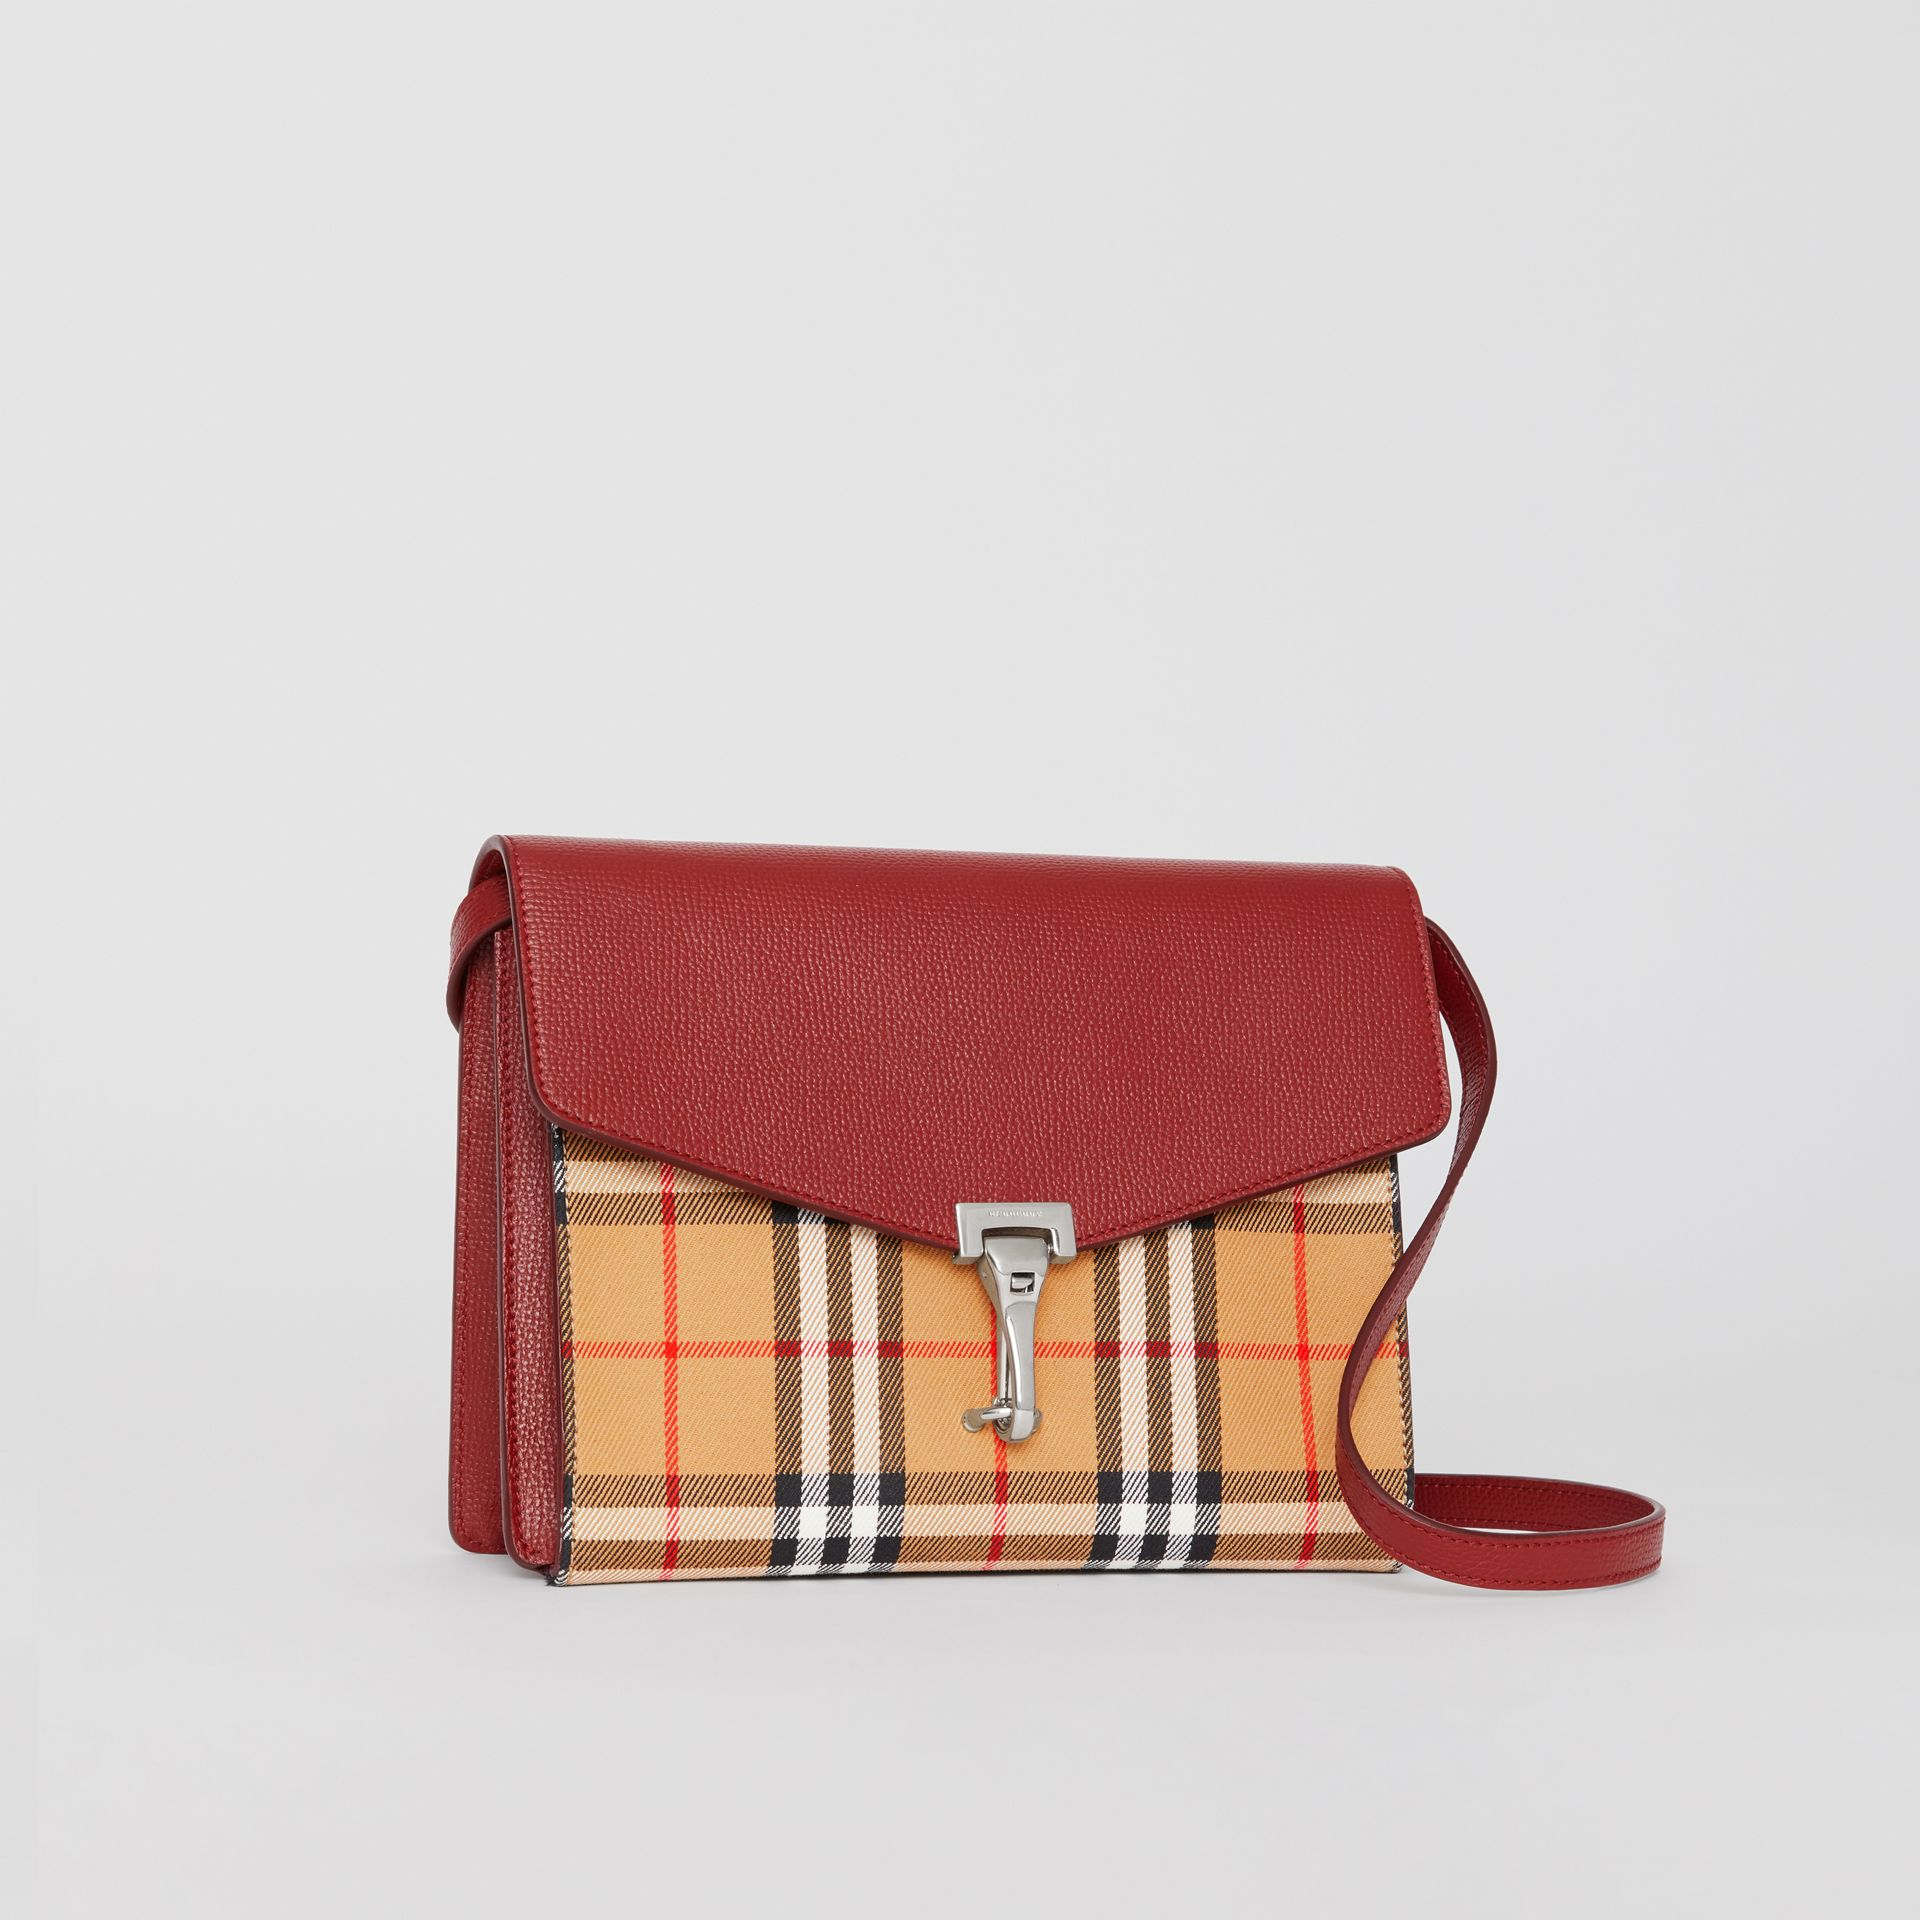 Small Vintage Check and Leather Crossbody Bag in Crimson - Women | Burberry - gallery image 4